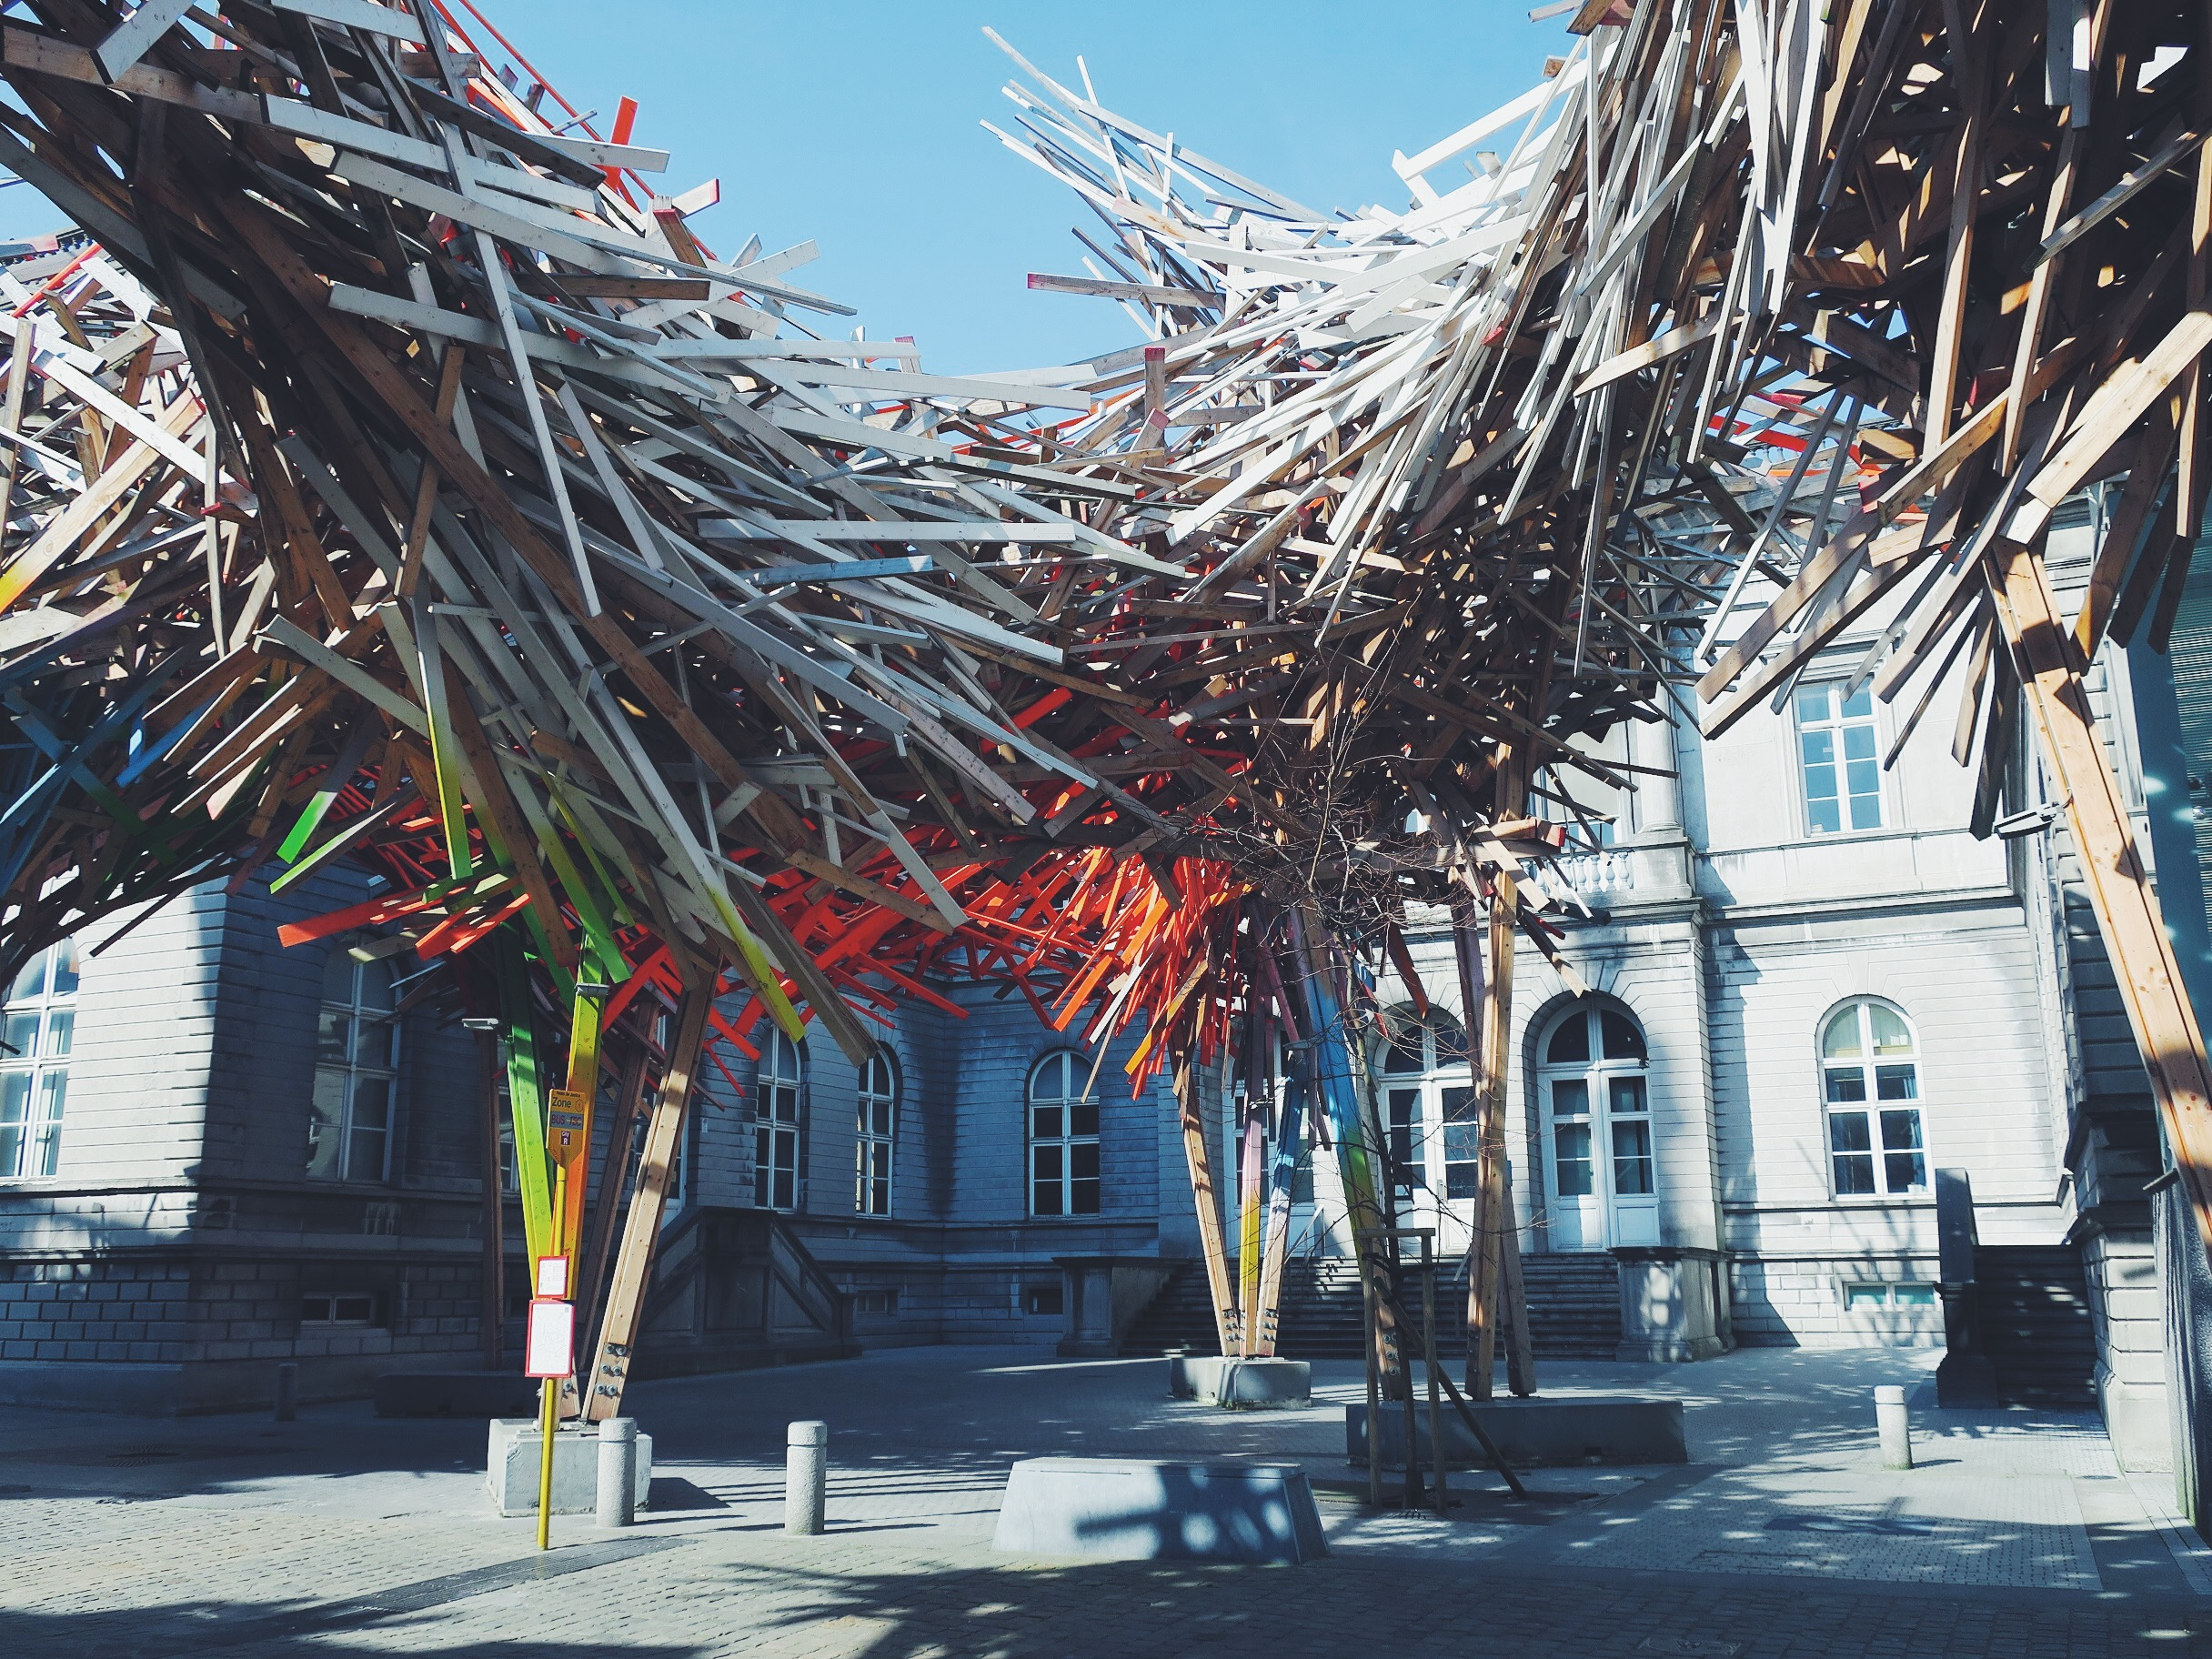 'The Passenger' by Arne Quinze, part of Mons 2015, often referred to as the Giant Mikado